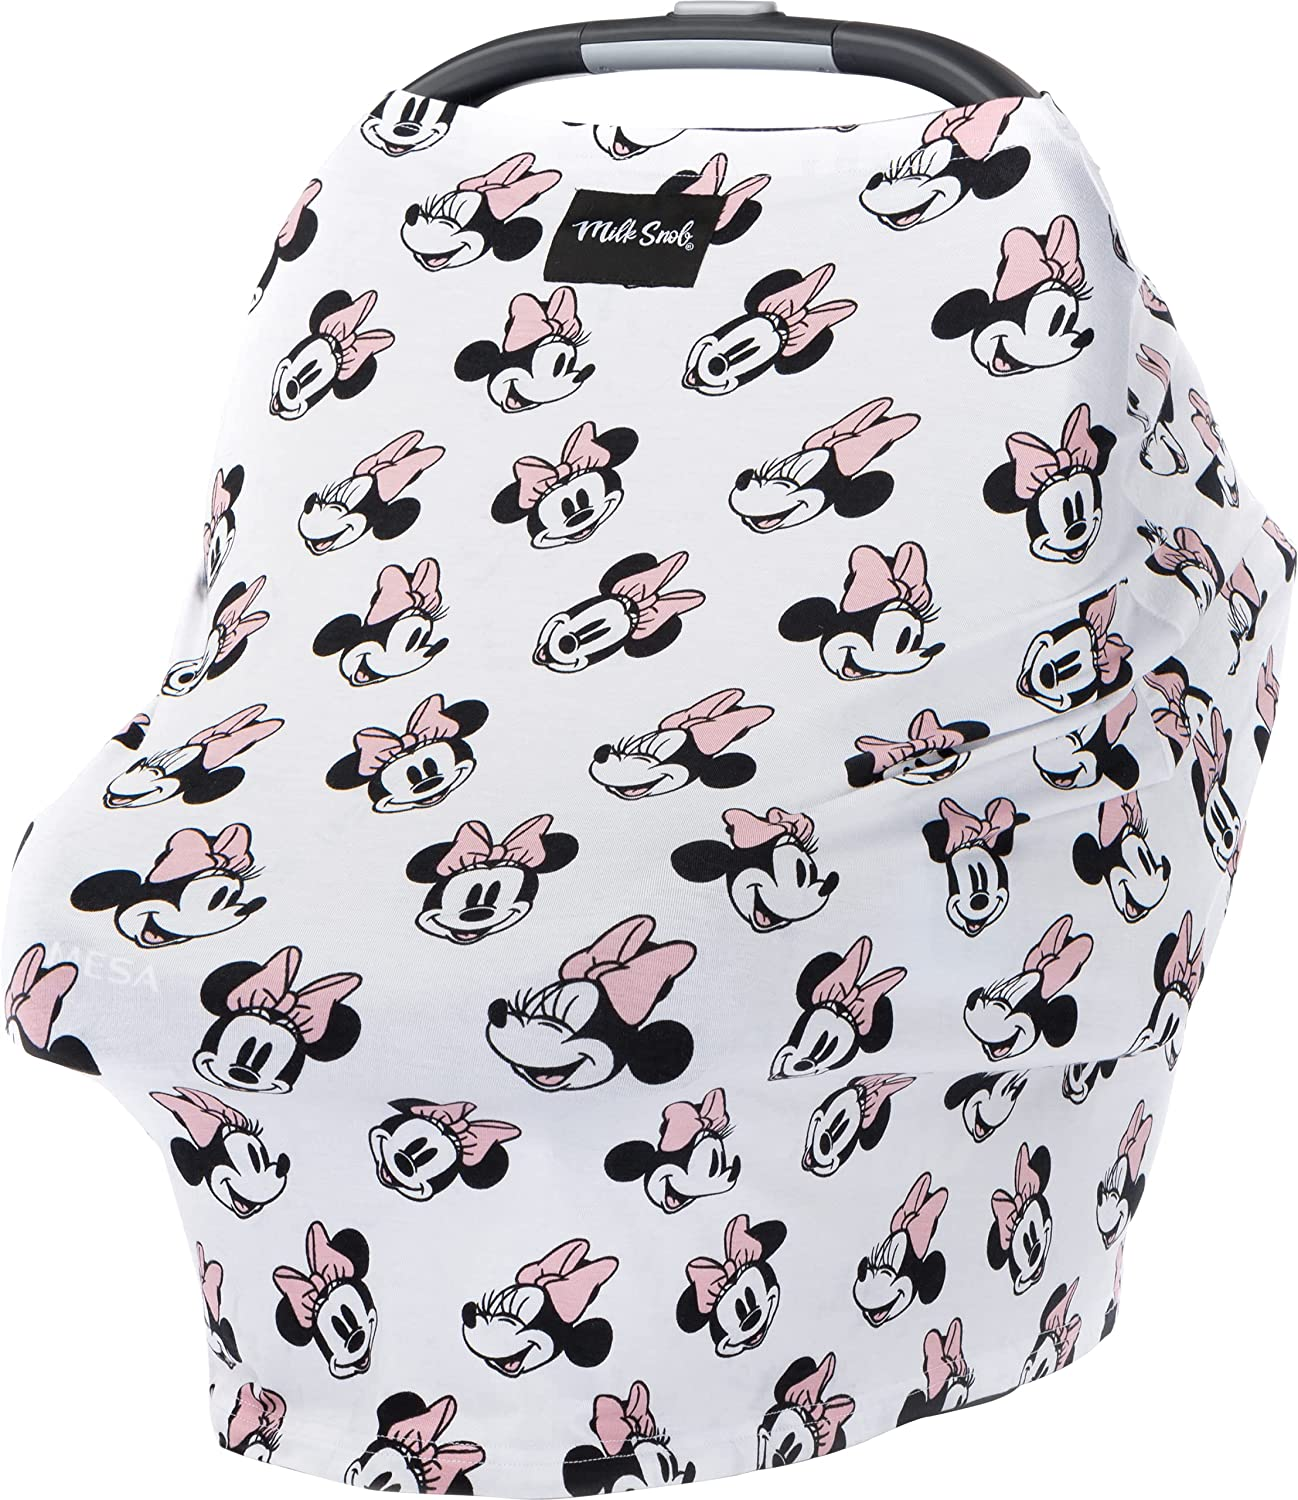 Milk Snob Original Disney 5-in-1 Cover, Minnie Mouse, Added Privacy for Breastfeeding, Baby Car Seat, Carrier, Stroller, High Chair, Shopping Cart, Lounger Canopy - Newborn Essentials, Nursing Top